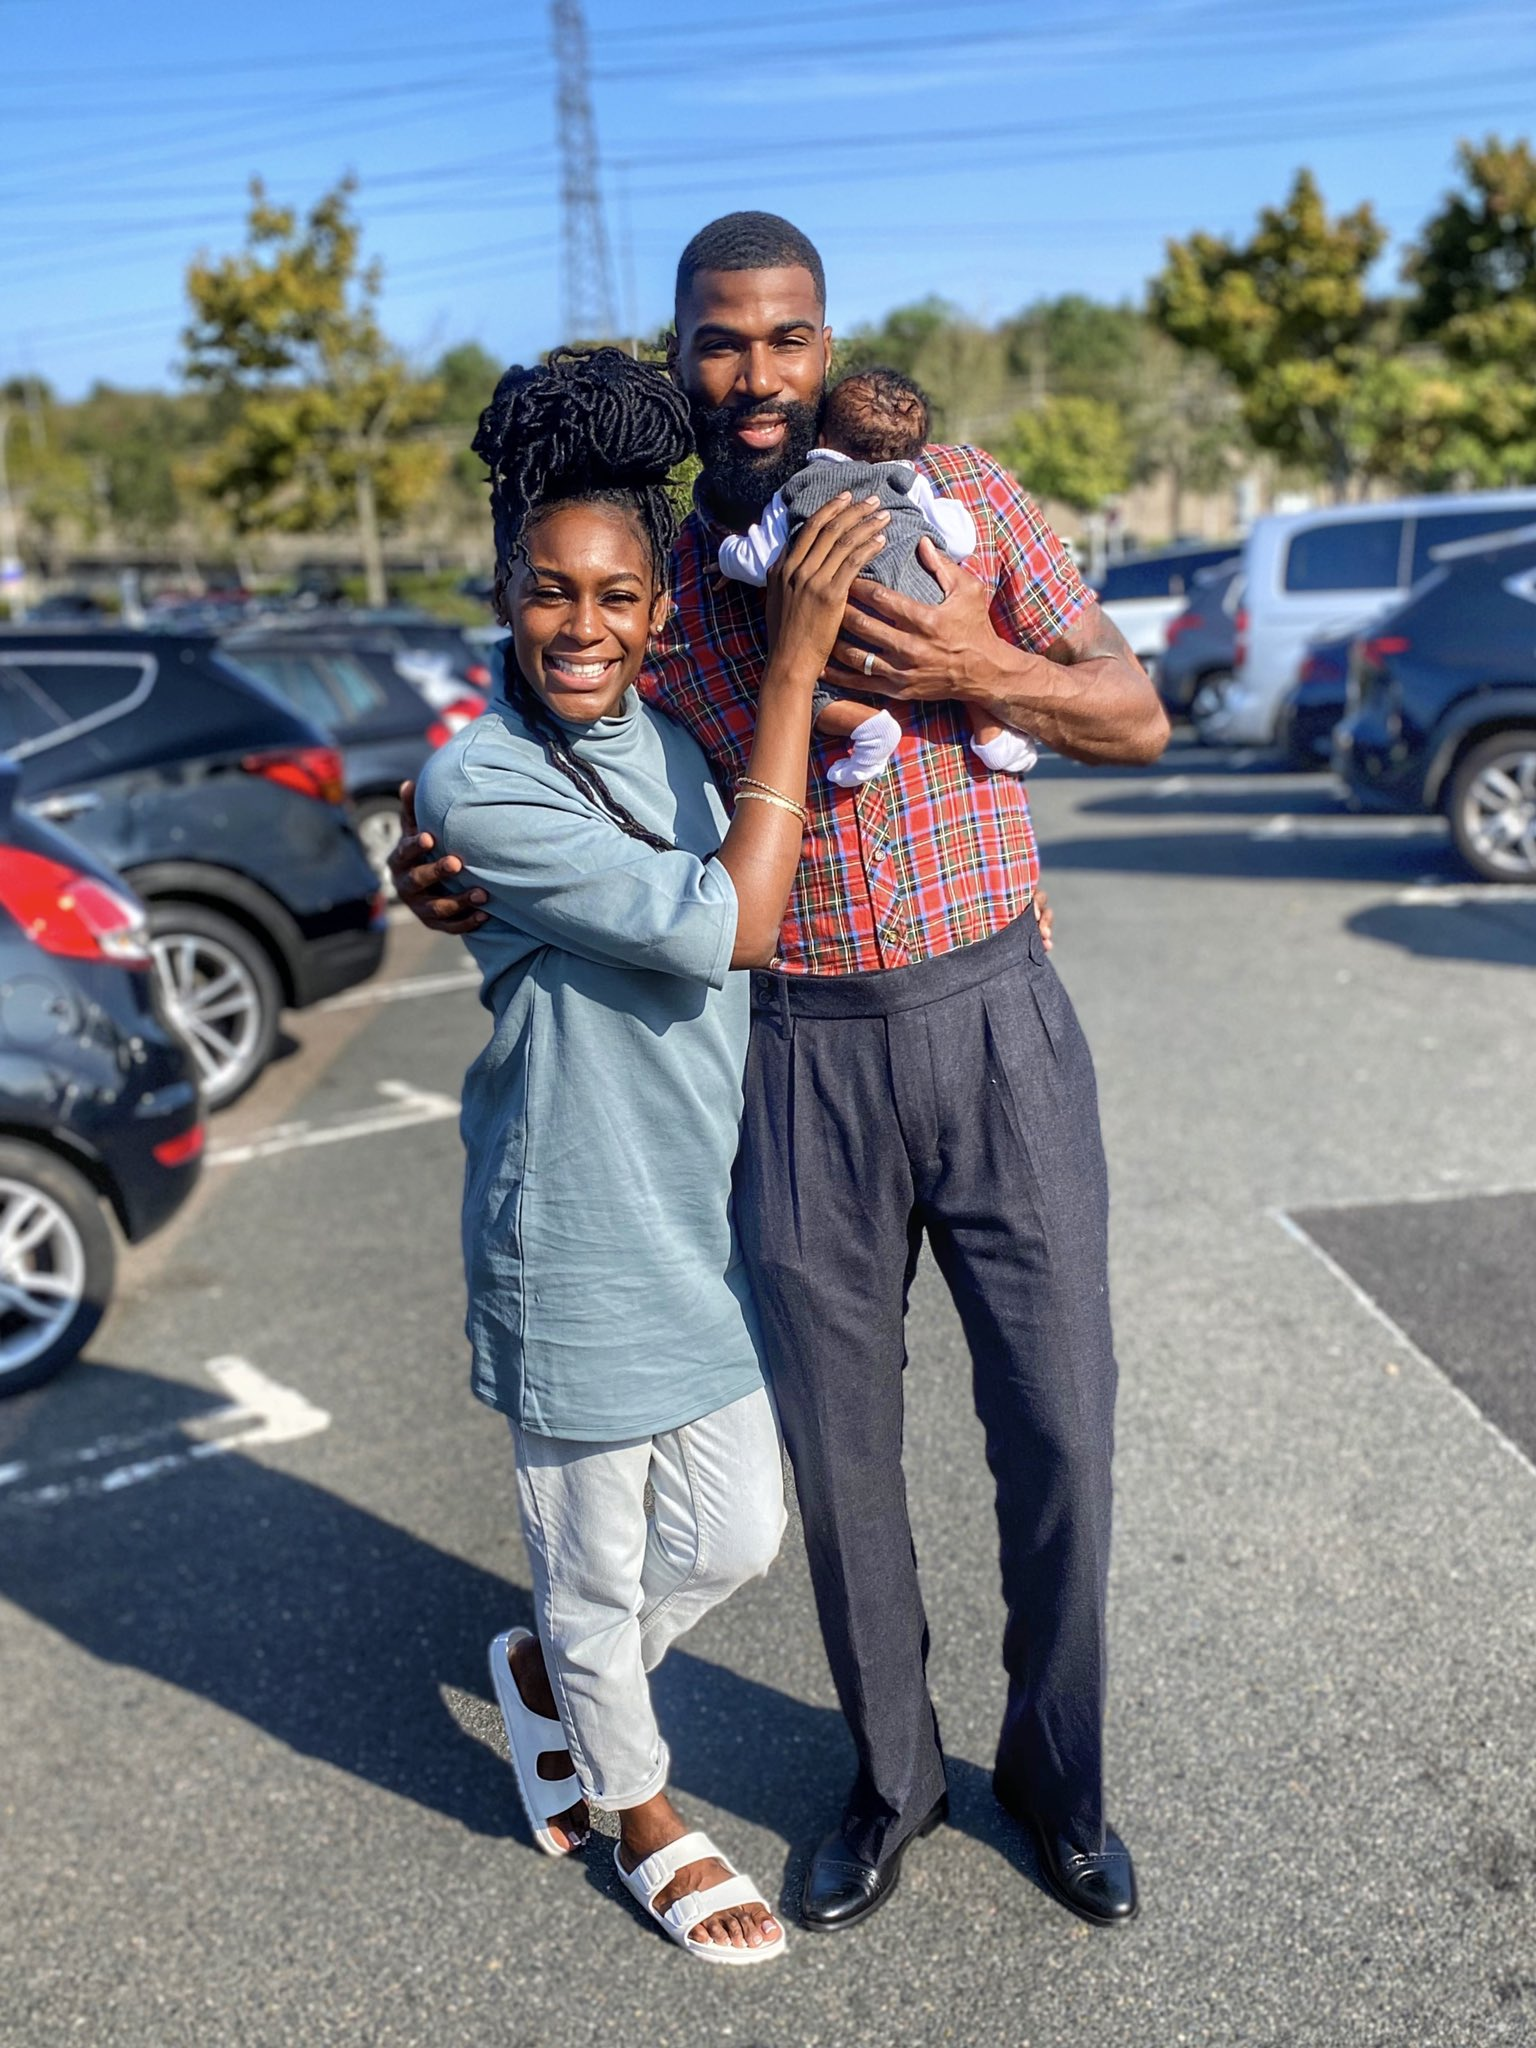 """Mike wfe son1 """"He who is faithful with little will be trusted with much more """" – Mike Edwards appreciates his wife and newborn baby"""